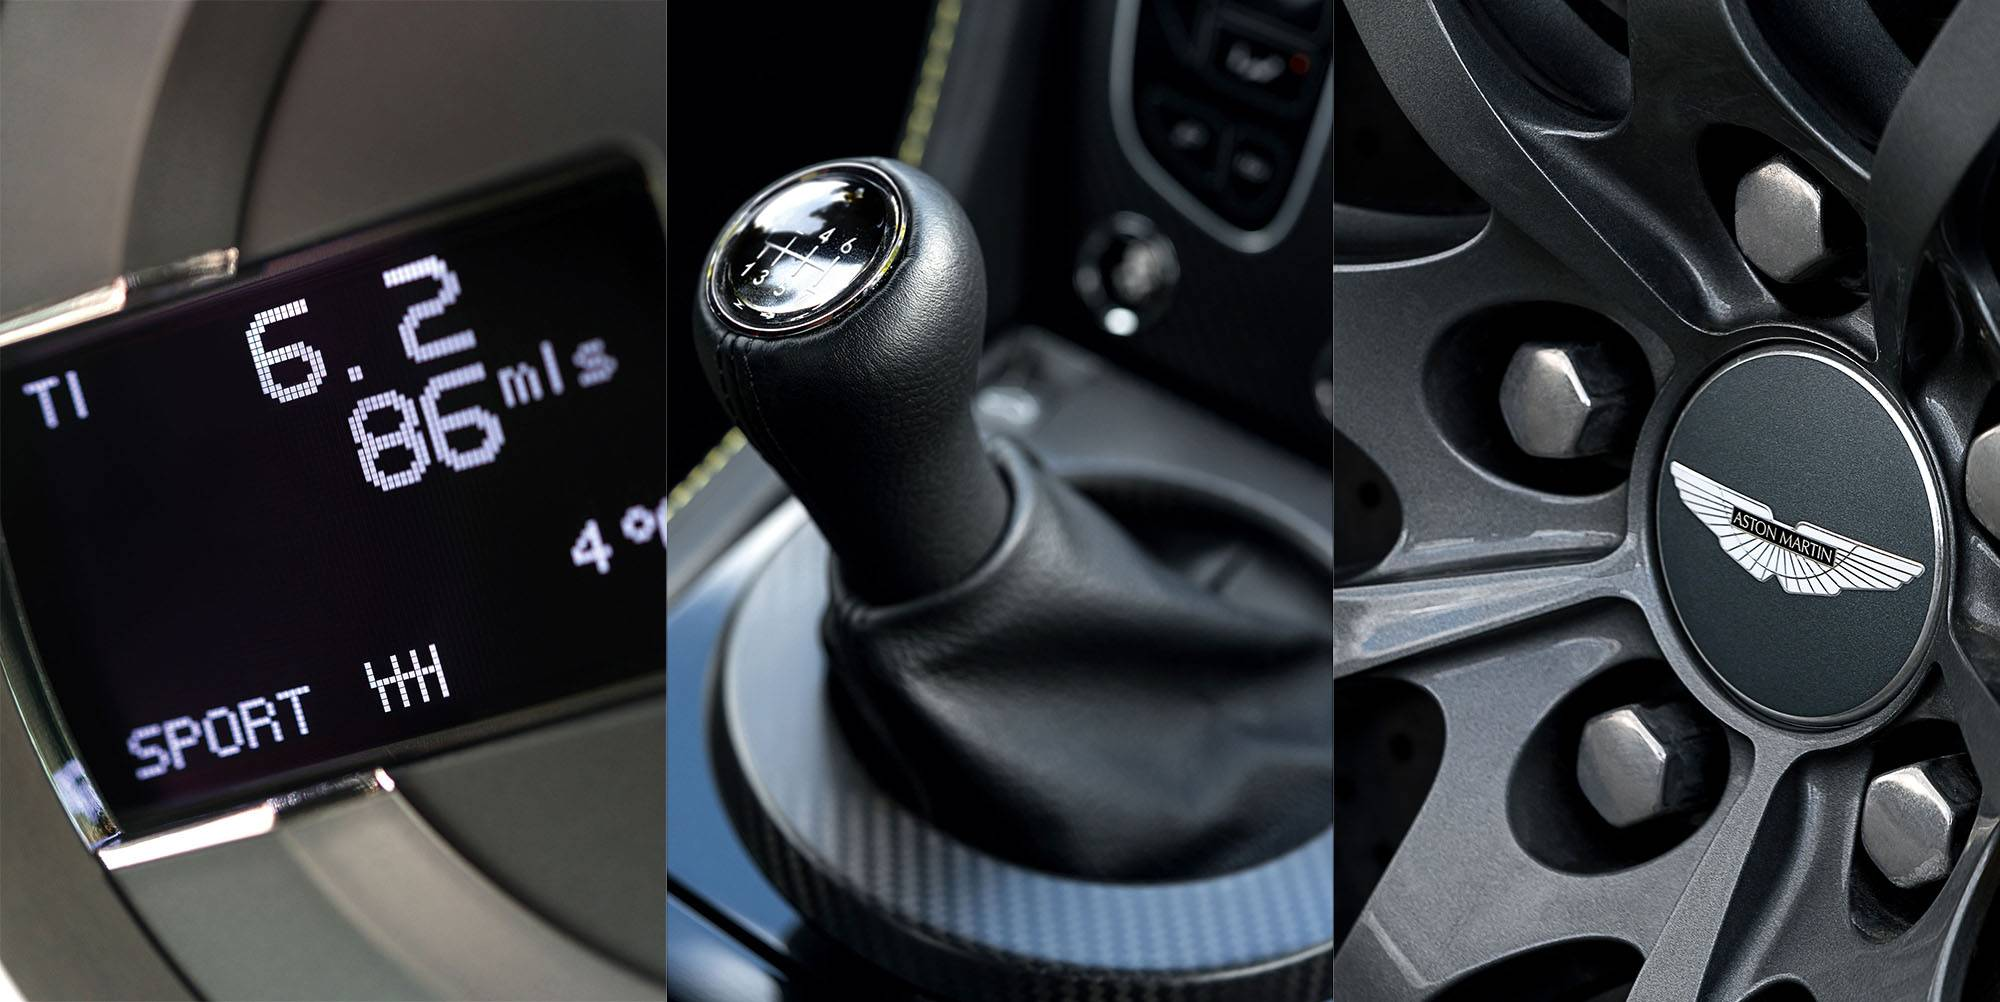 A close up view of the AMSHIFT in sport mode, the gearbox and the lightweight alloy wheels of the Aston Martin V12 Vantage S